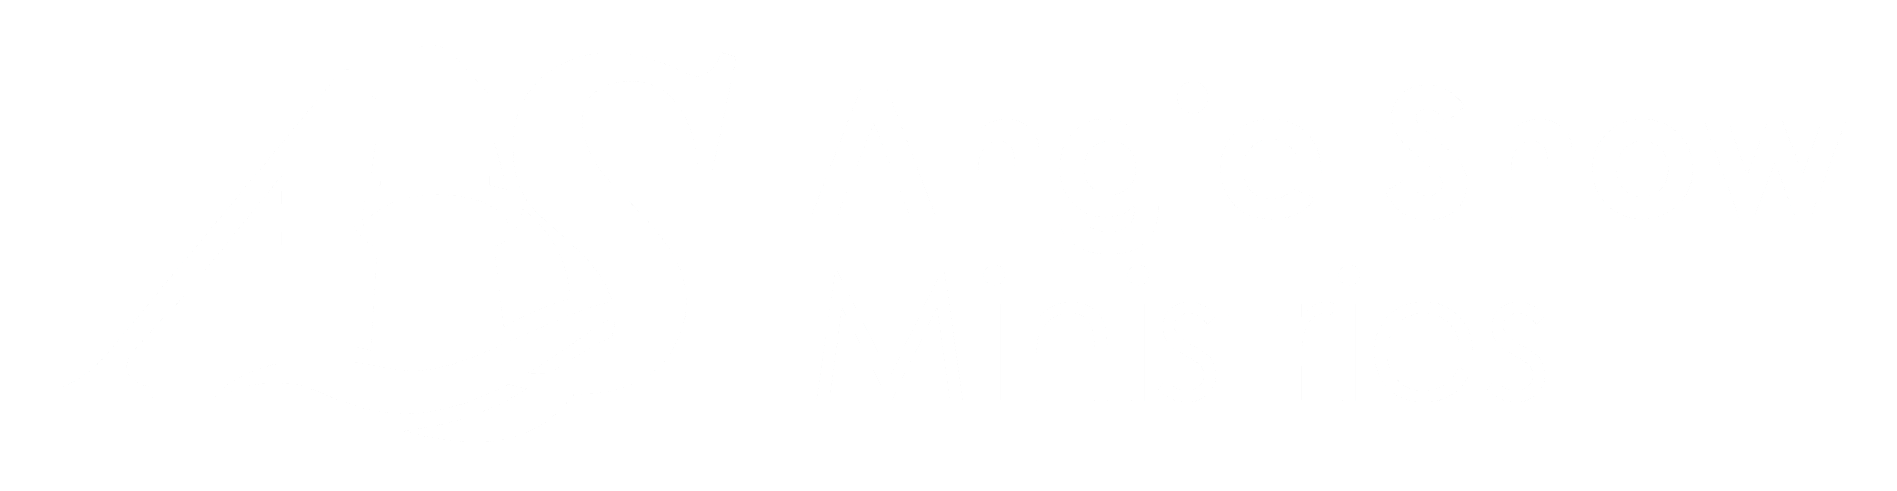 Angie Snow Ministries